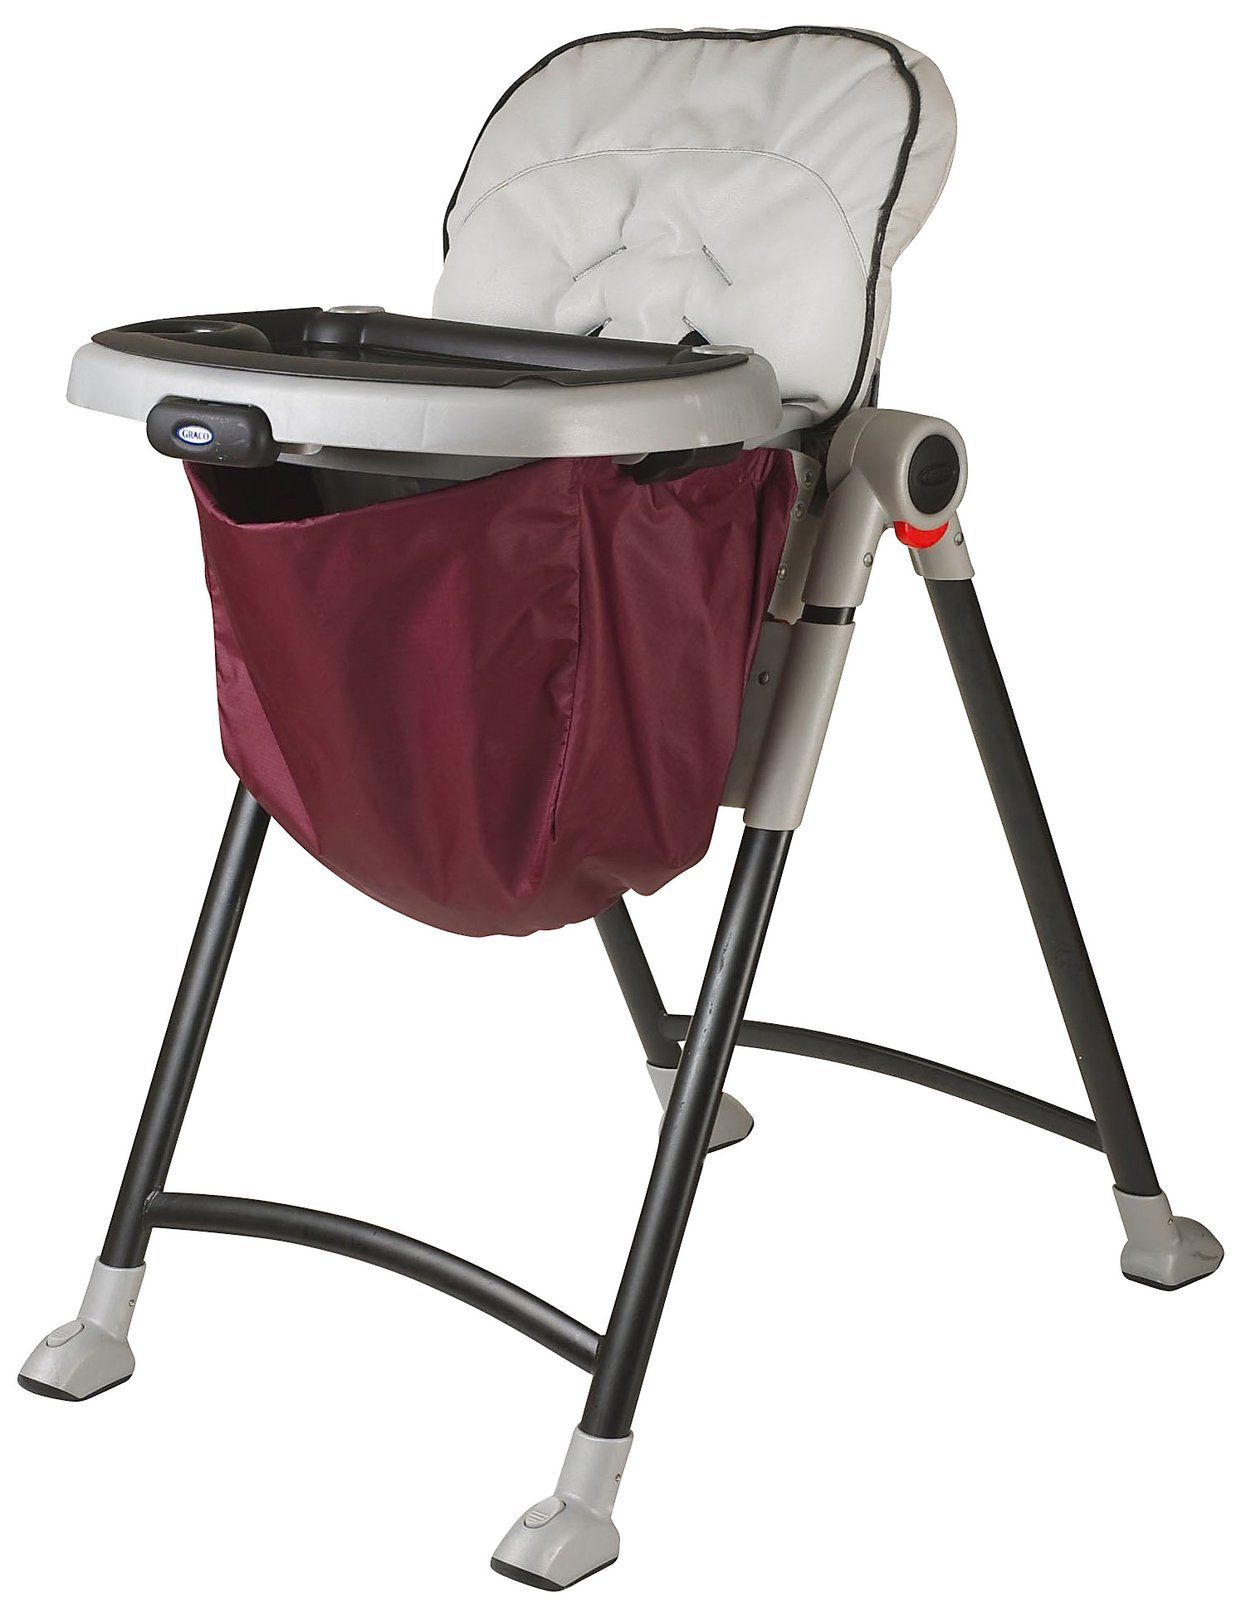 diapers Nursery Wupzey High Chair Food Catcher Cranberry Best